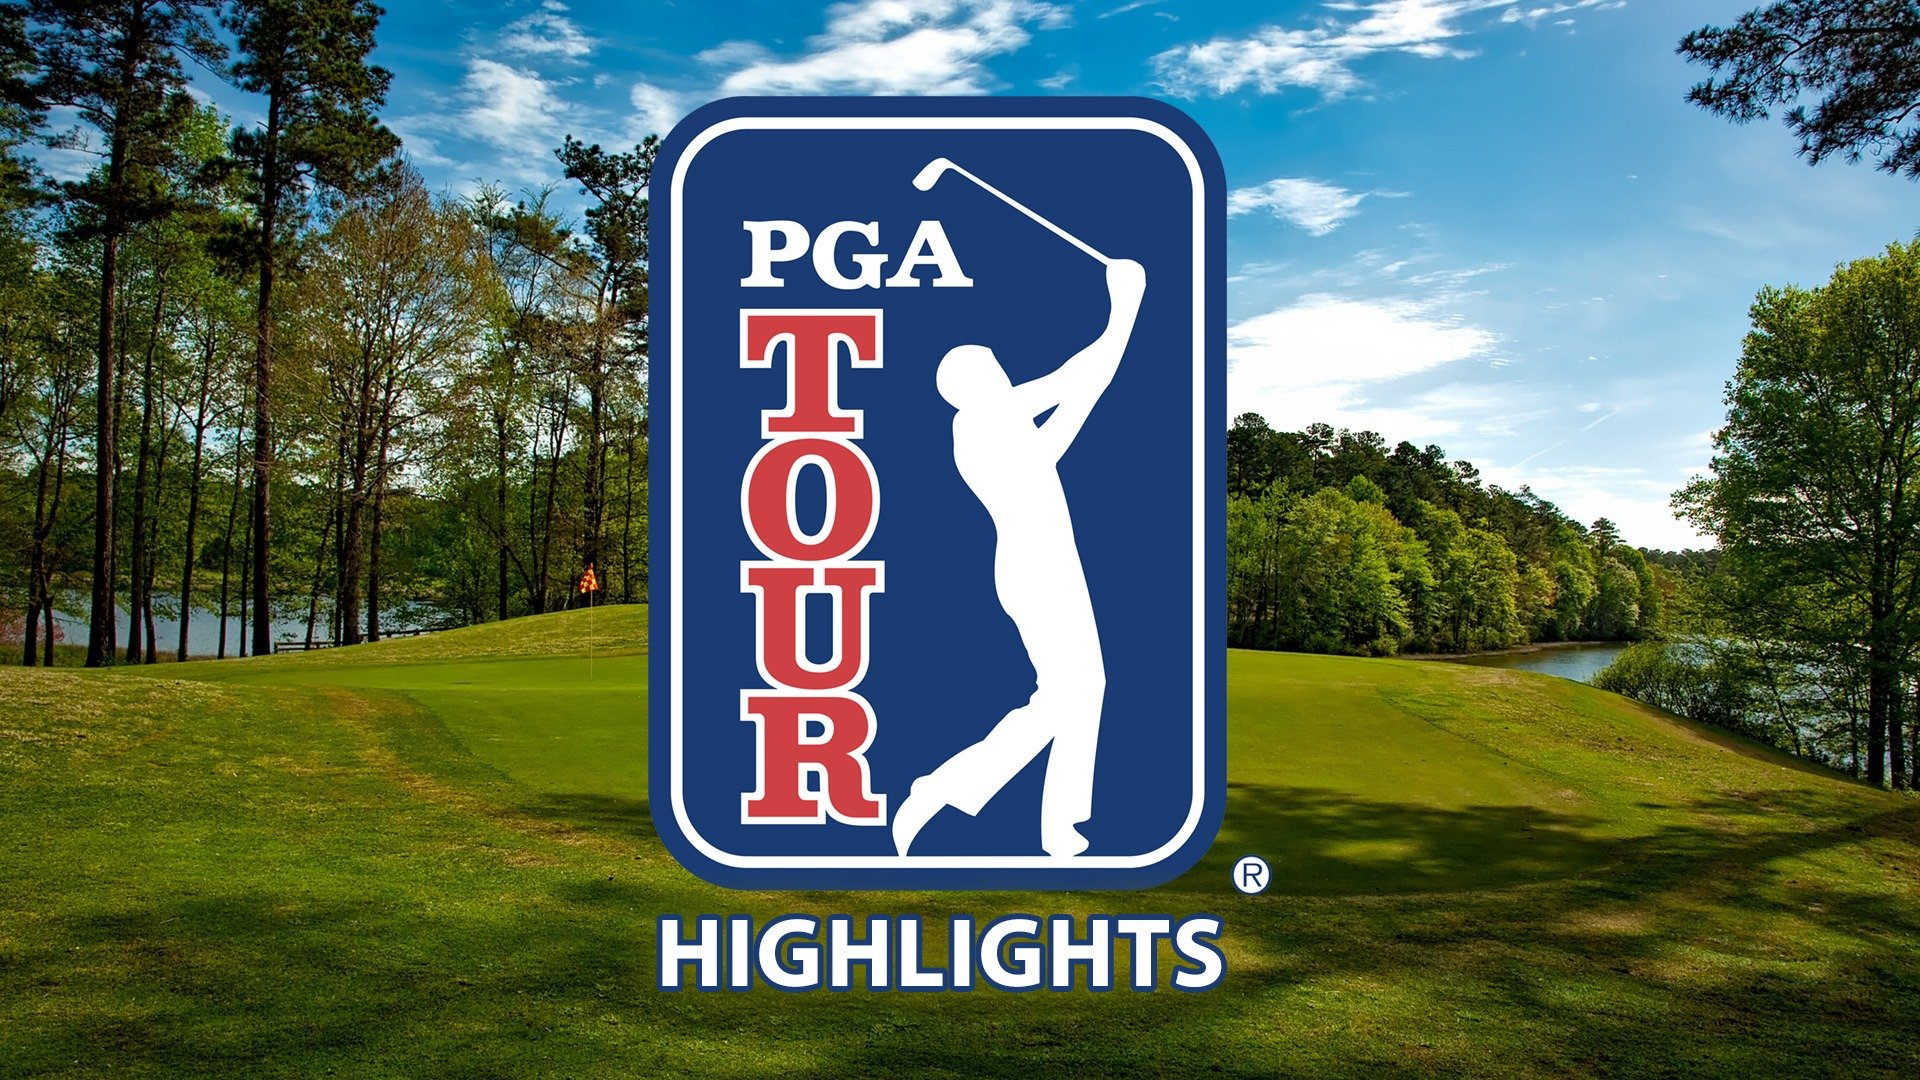 PGA Tour Highlights